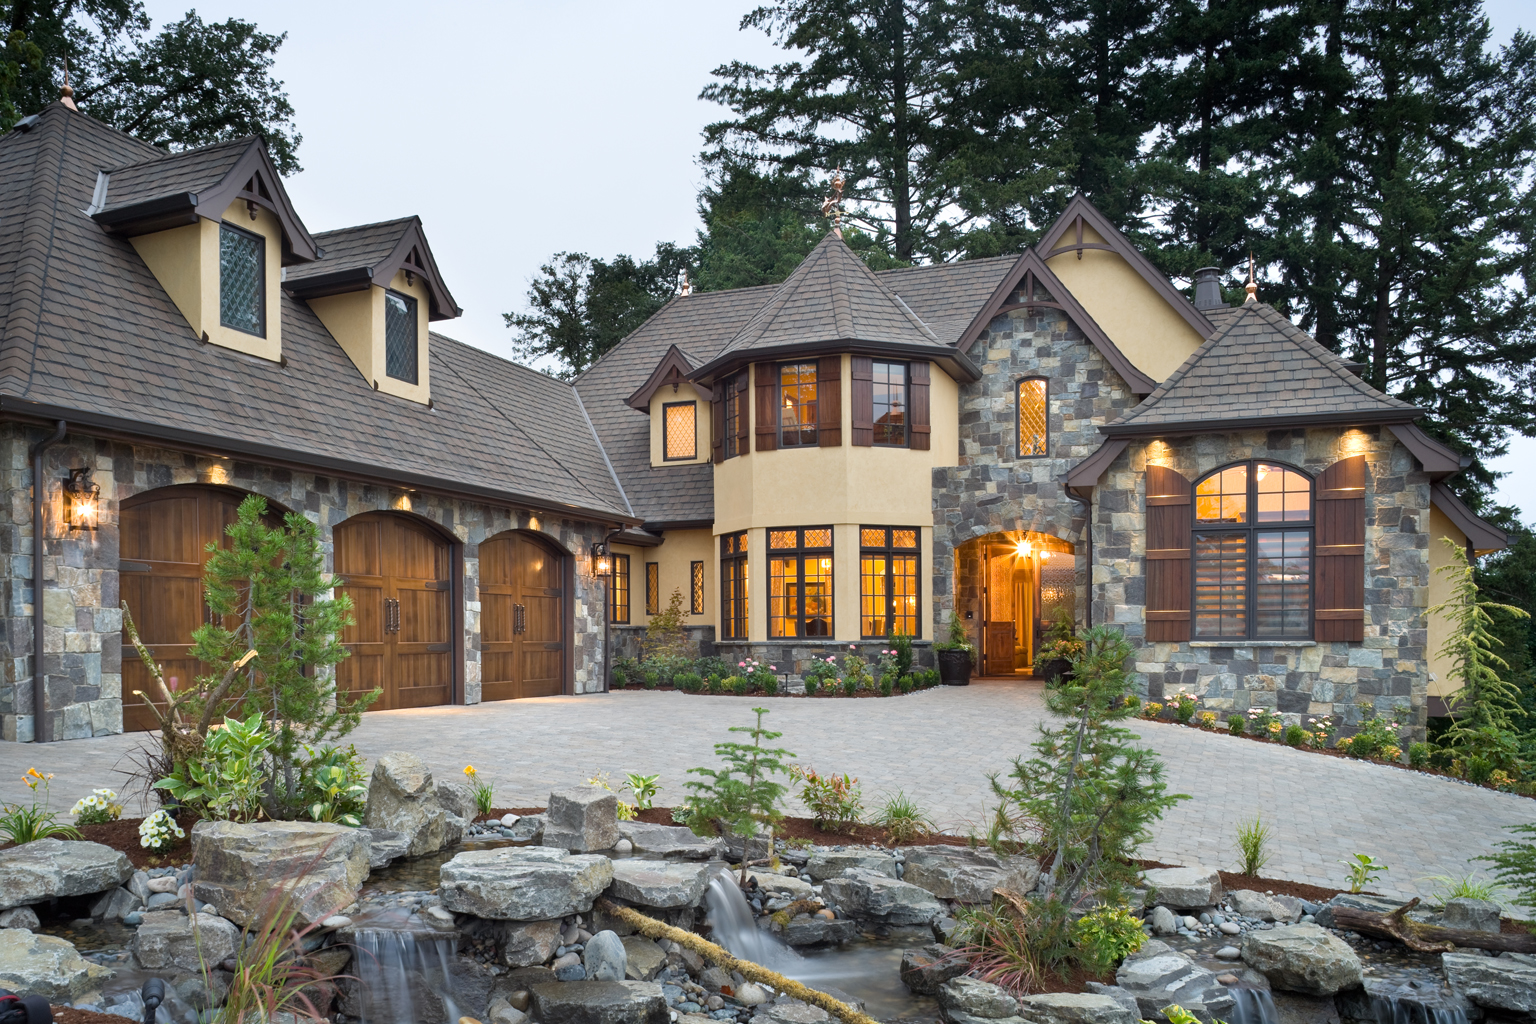 39 rivendell manor 39 by bc custom homes represents mascord 39 s for Custom luxury home designs